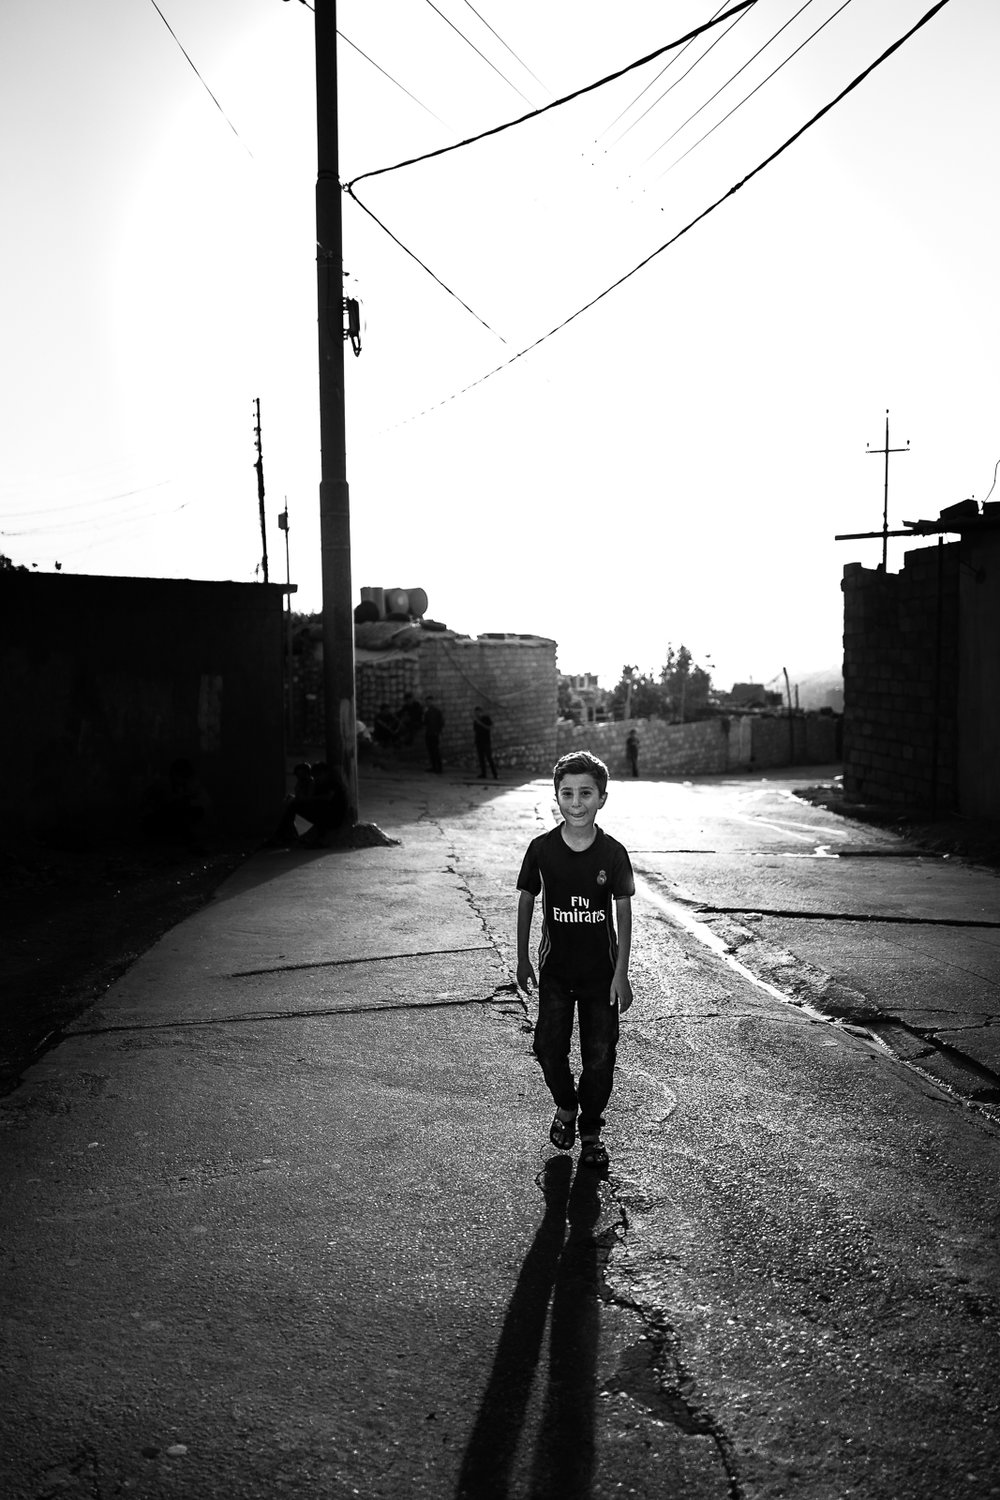 A child walks in front of me in the old city of Dohuk